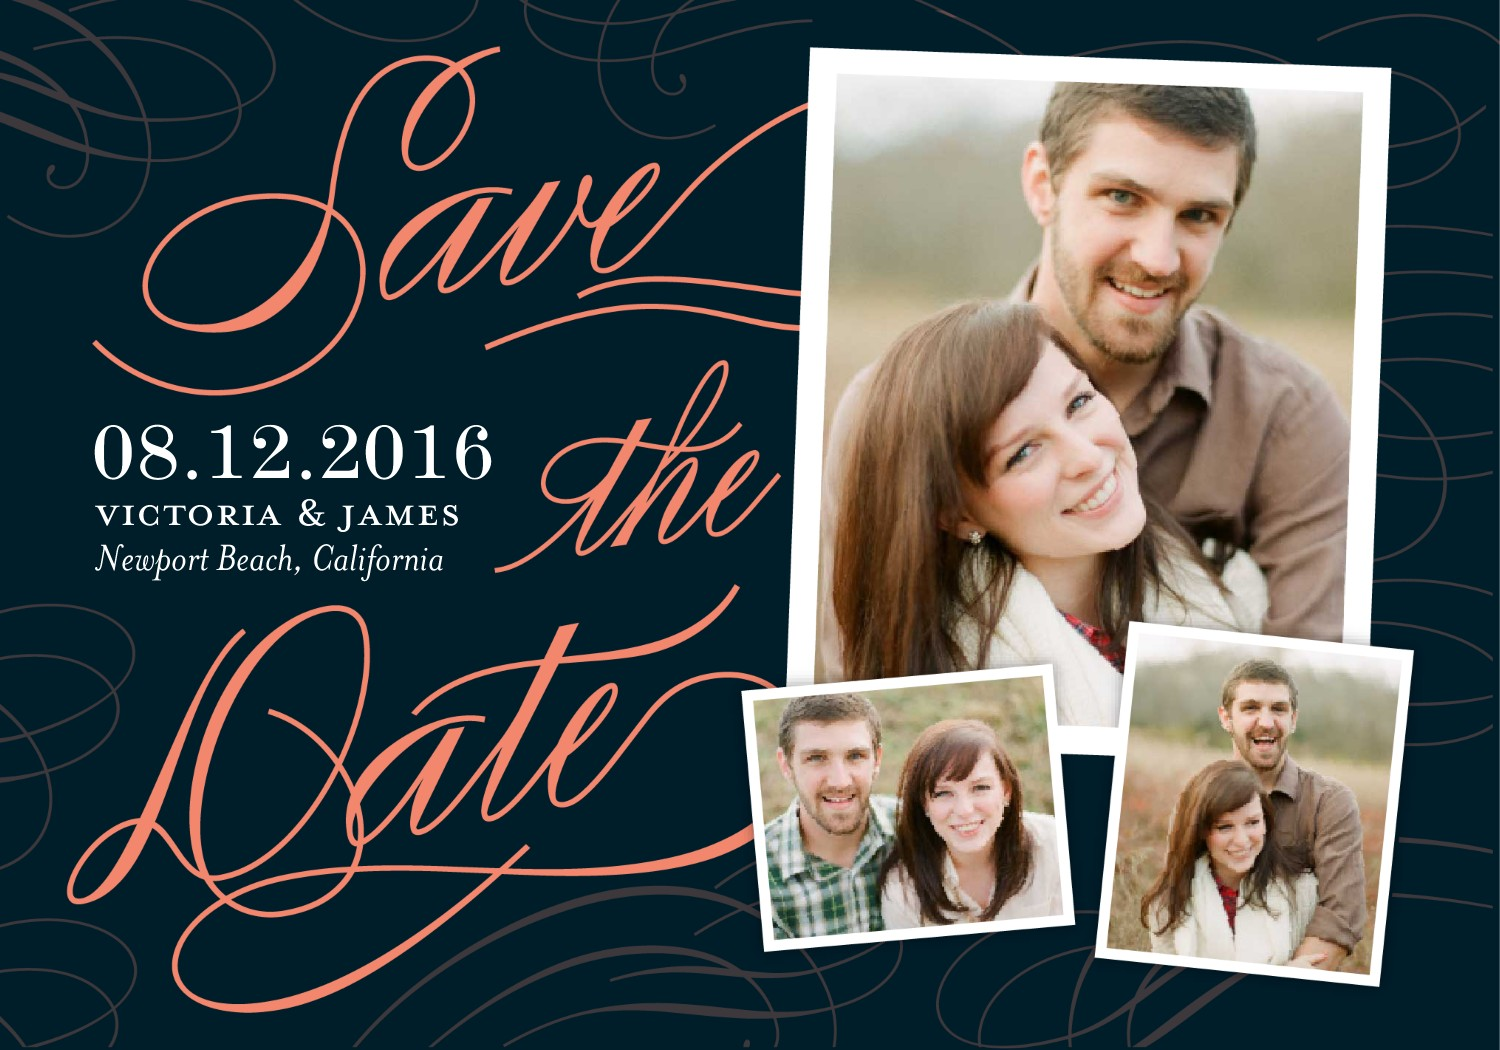 Save the date card with a collage of photos.